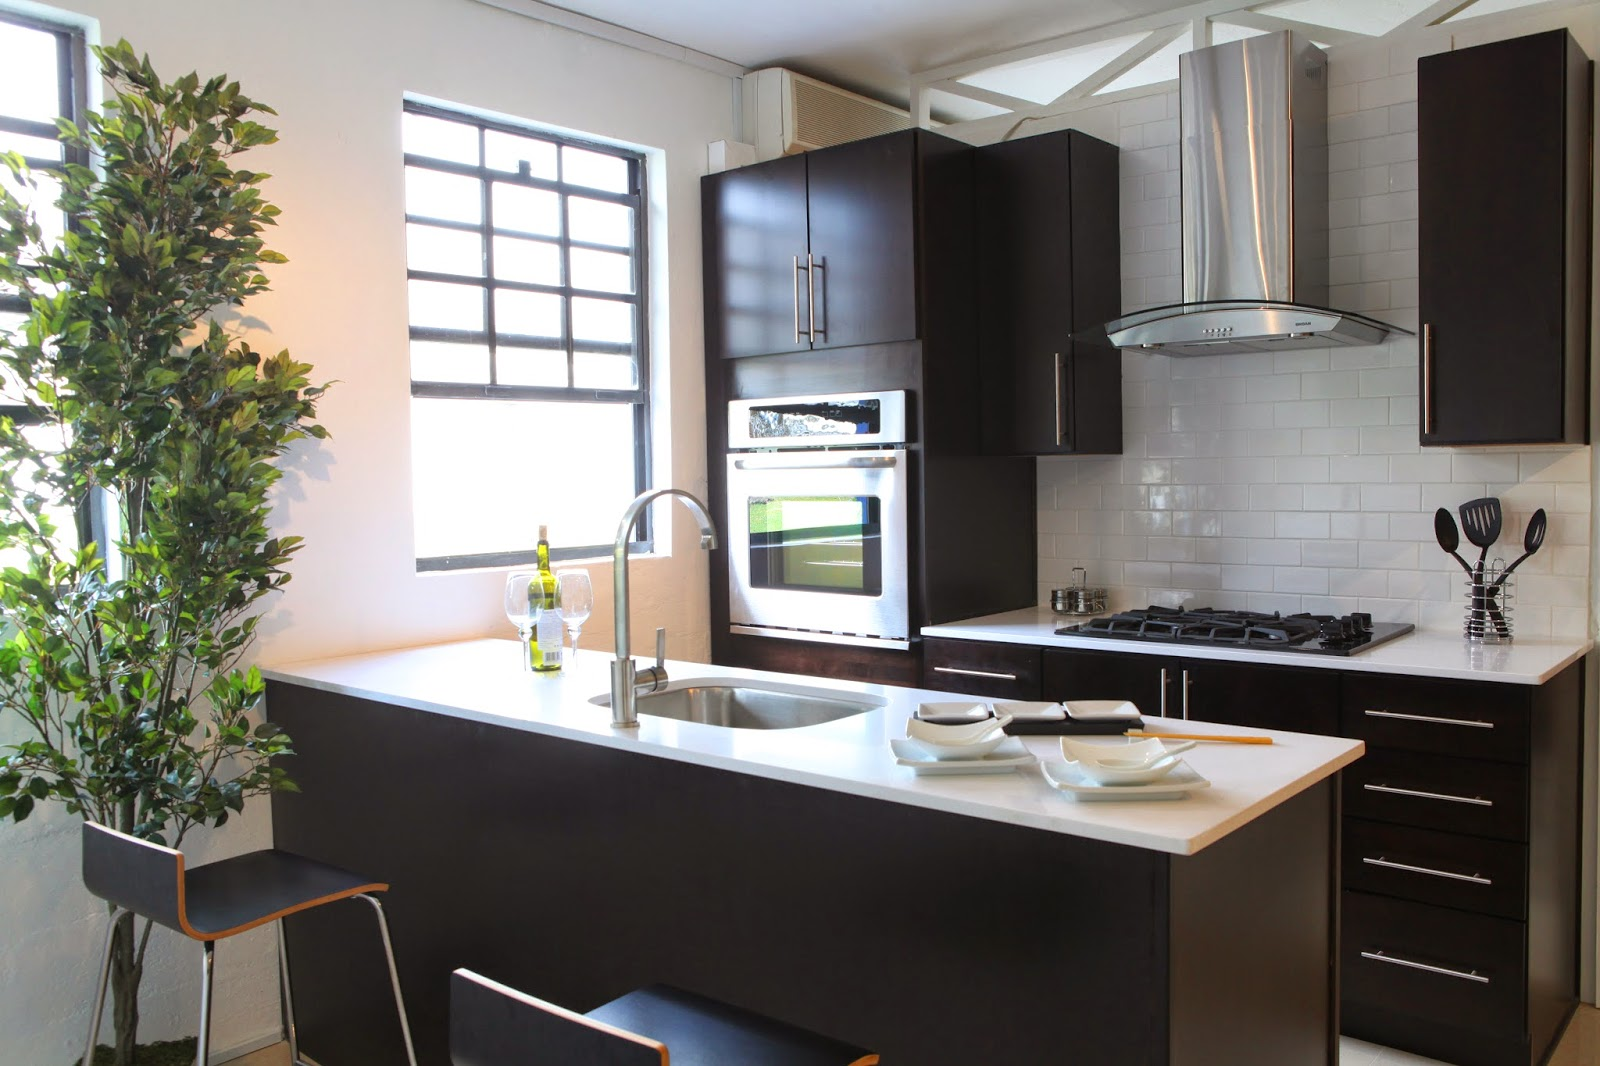 ... The Countertops And Cabinets. Cornerstone Has A Diverse Portfolio And  Has Worked On Local Projects Such As Claridges Luxury Condos, Coverly    Spring ...